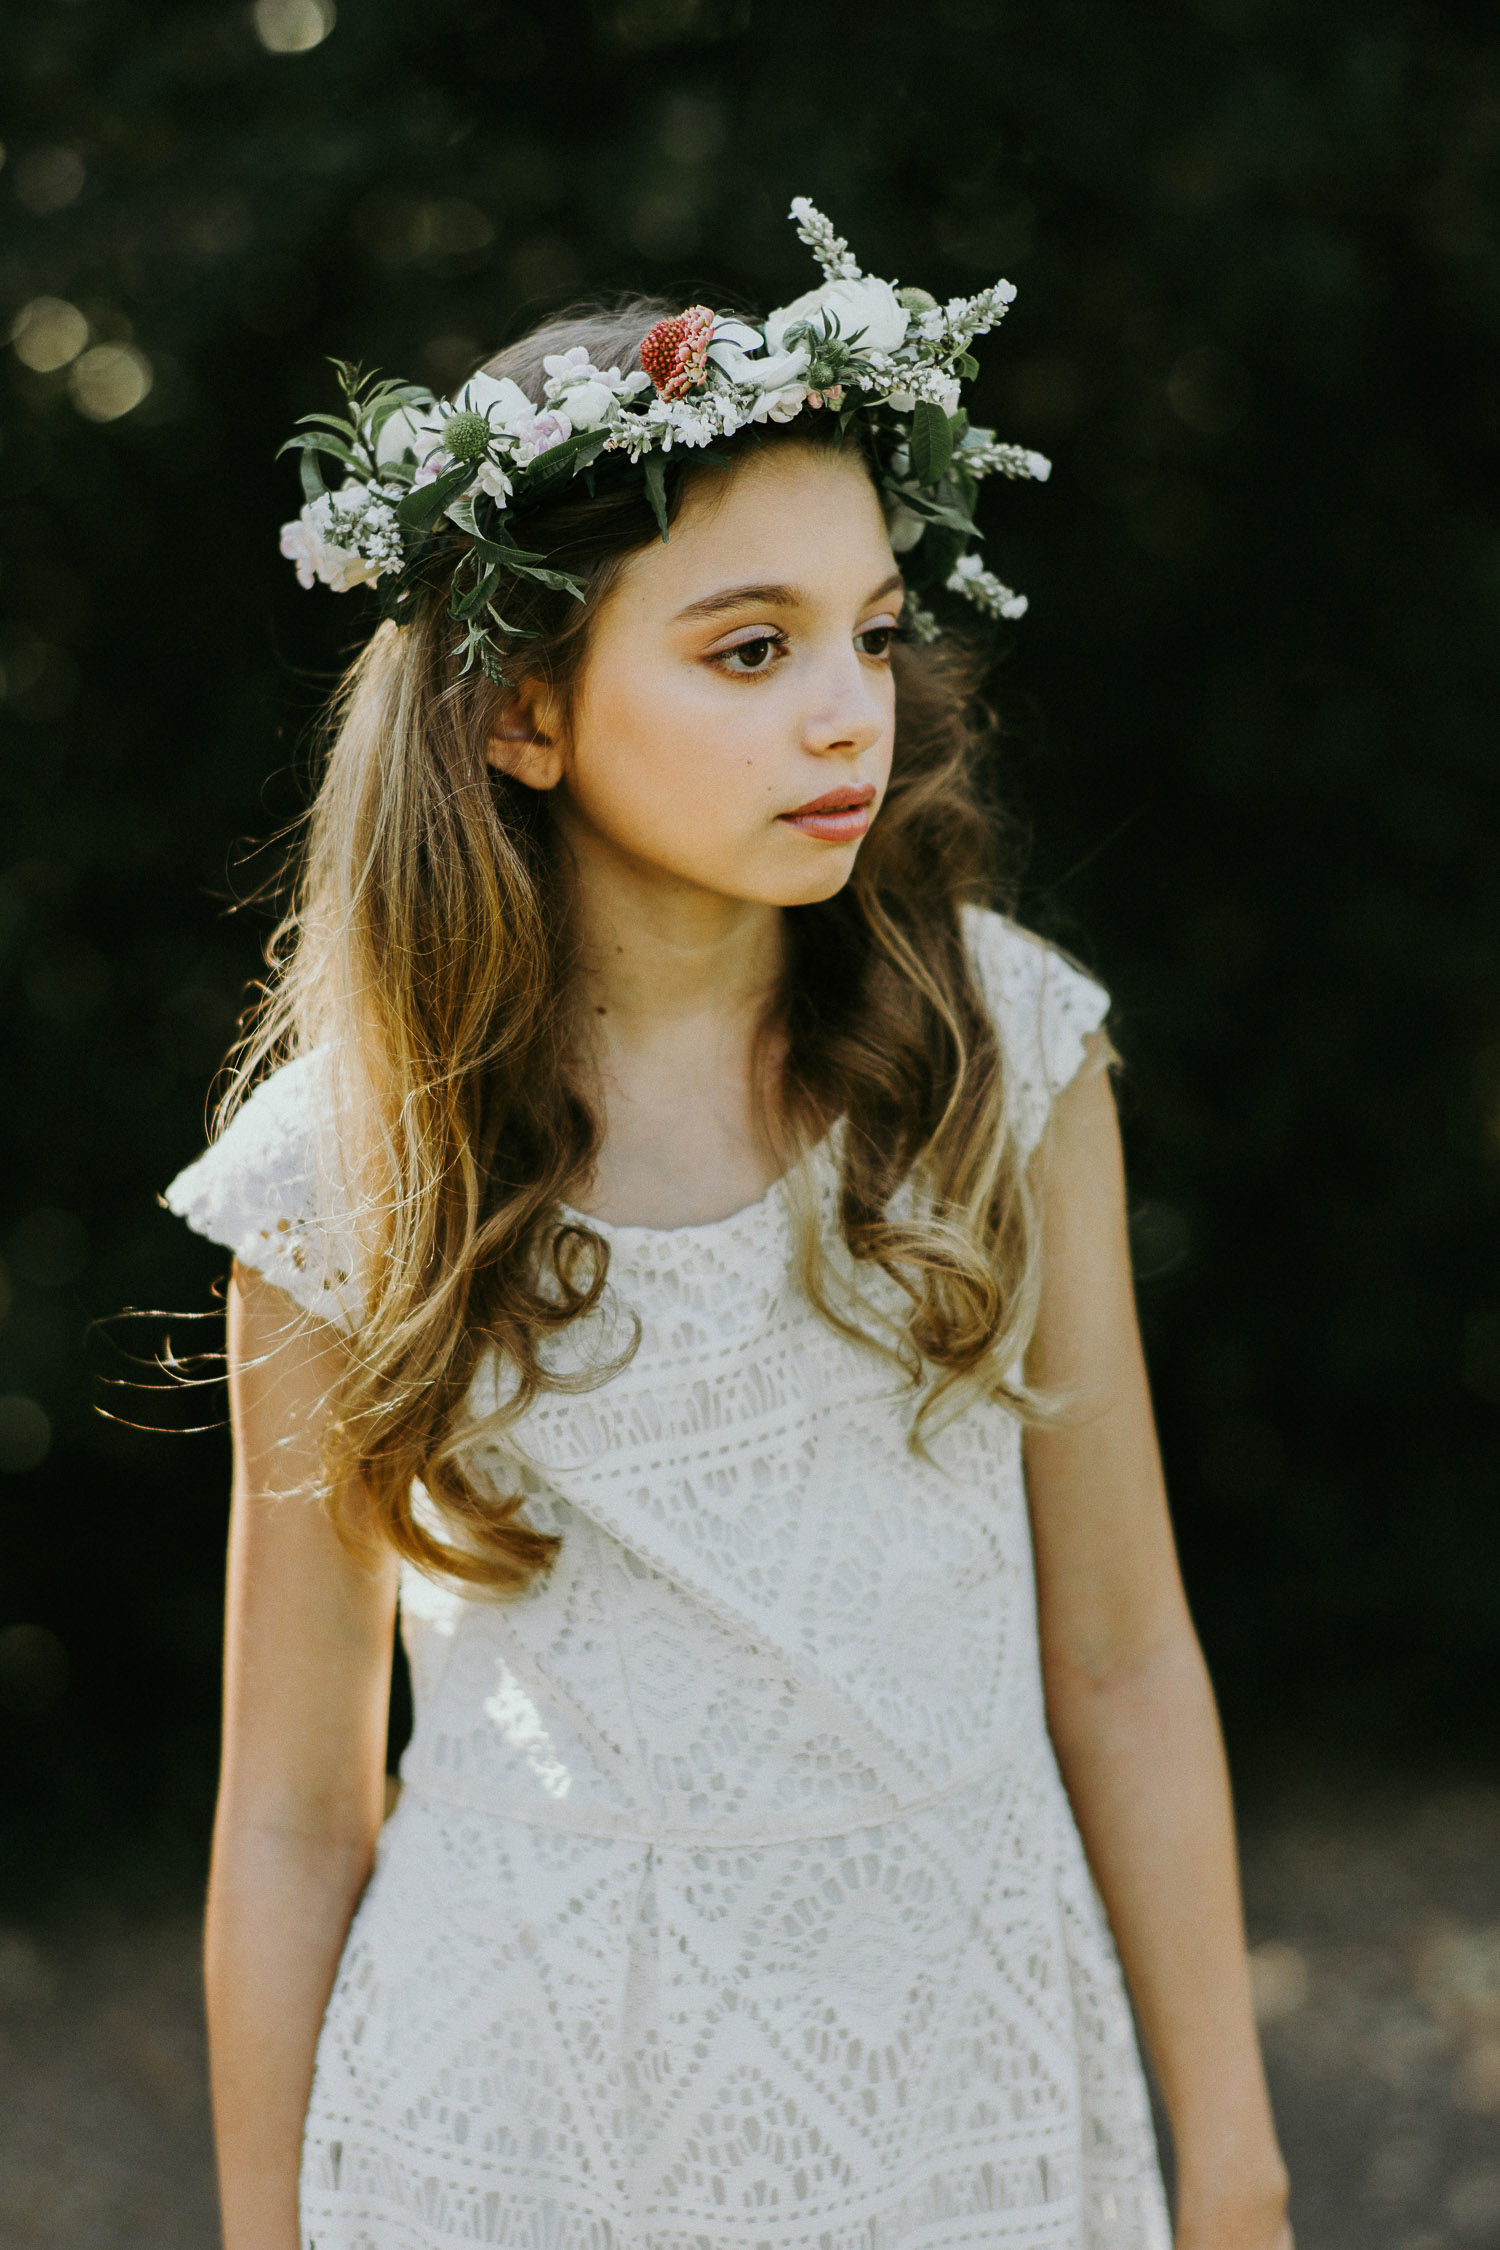 Image of a white dress girl wearing a flower crown